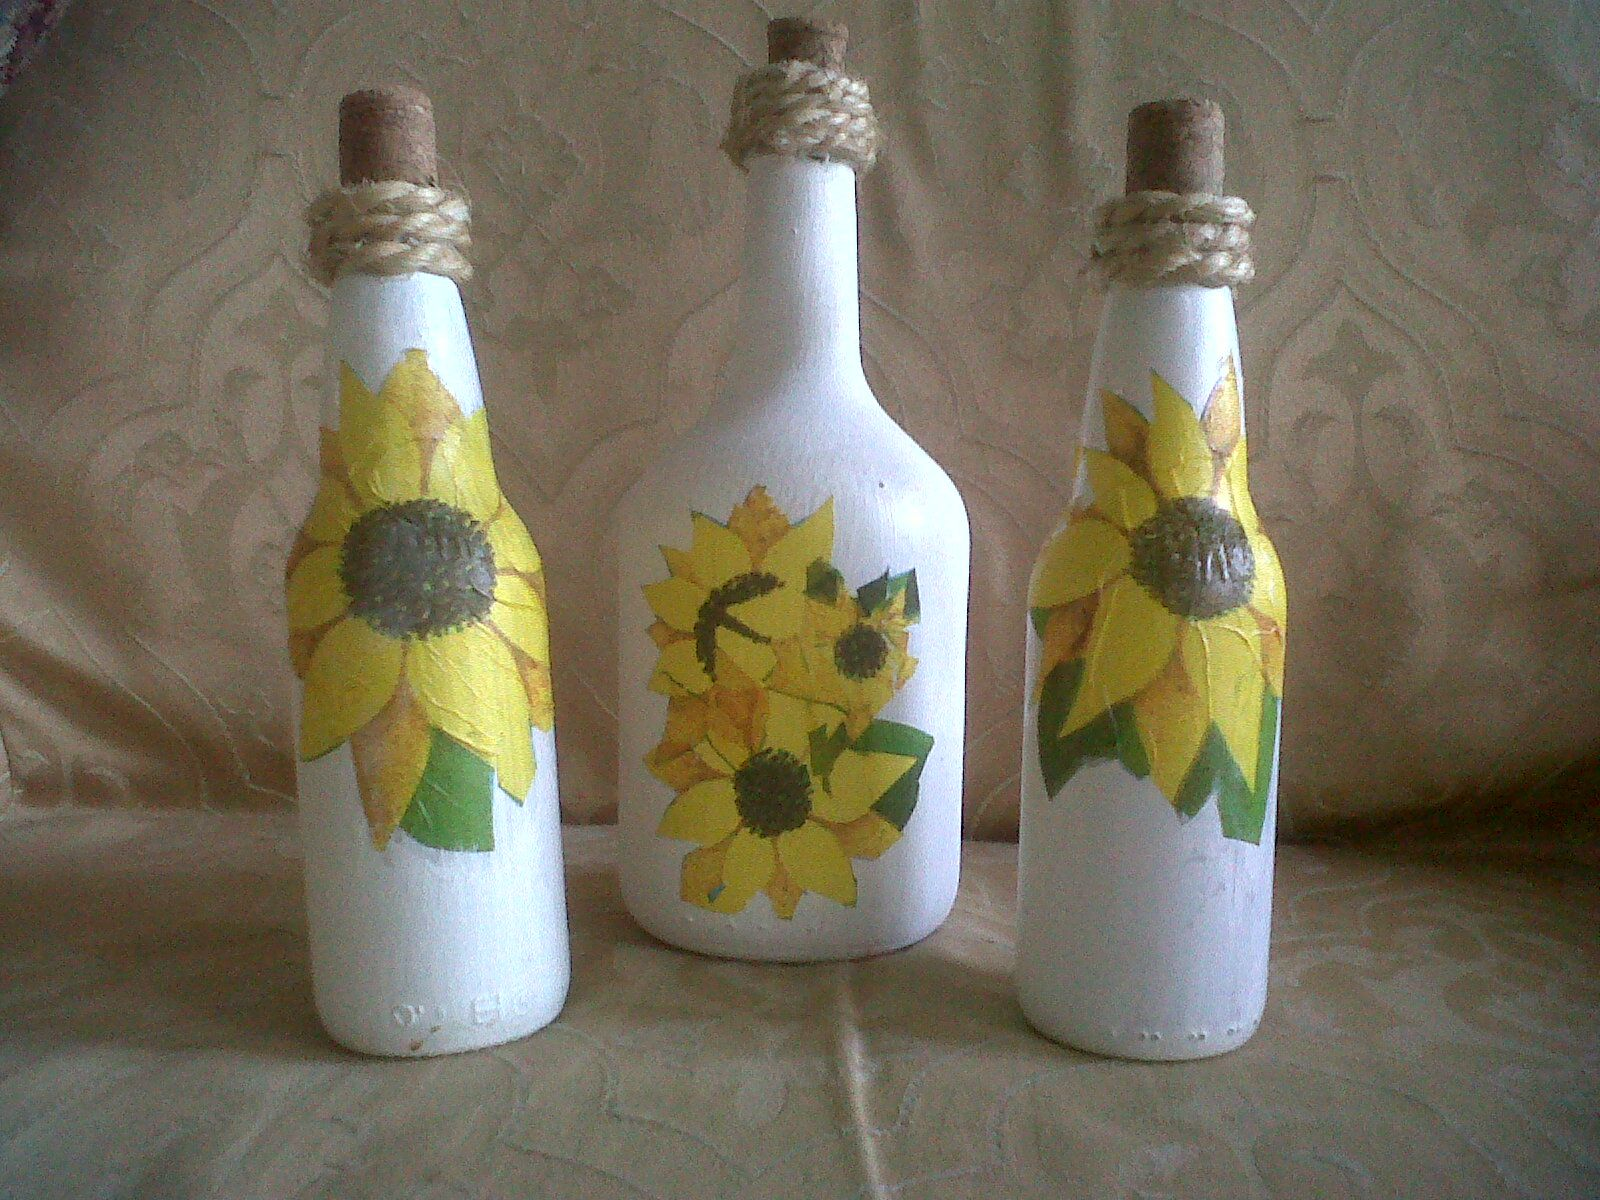 Botellas De Vidrio Decoradas Botellas Decoradas Con Técnica De Decoupage Decoupage